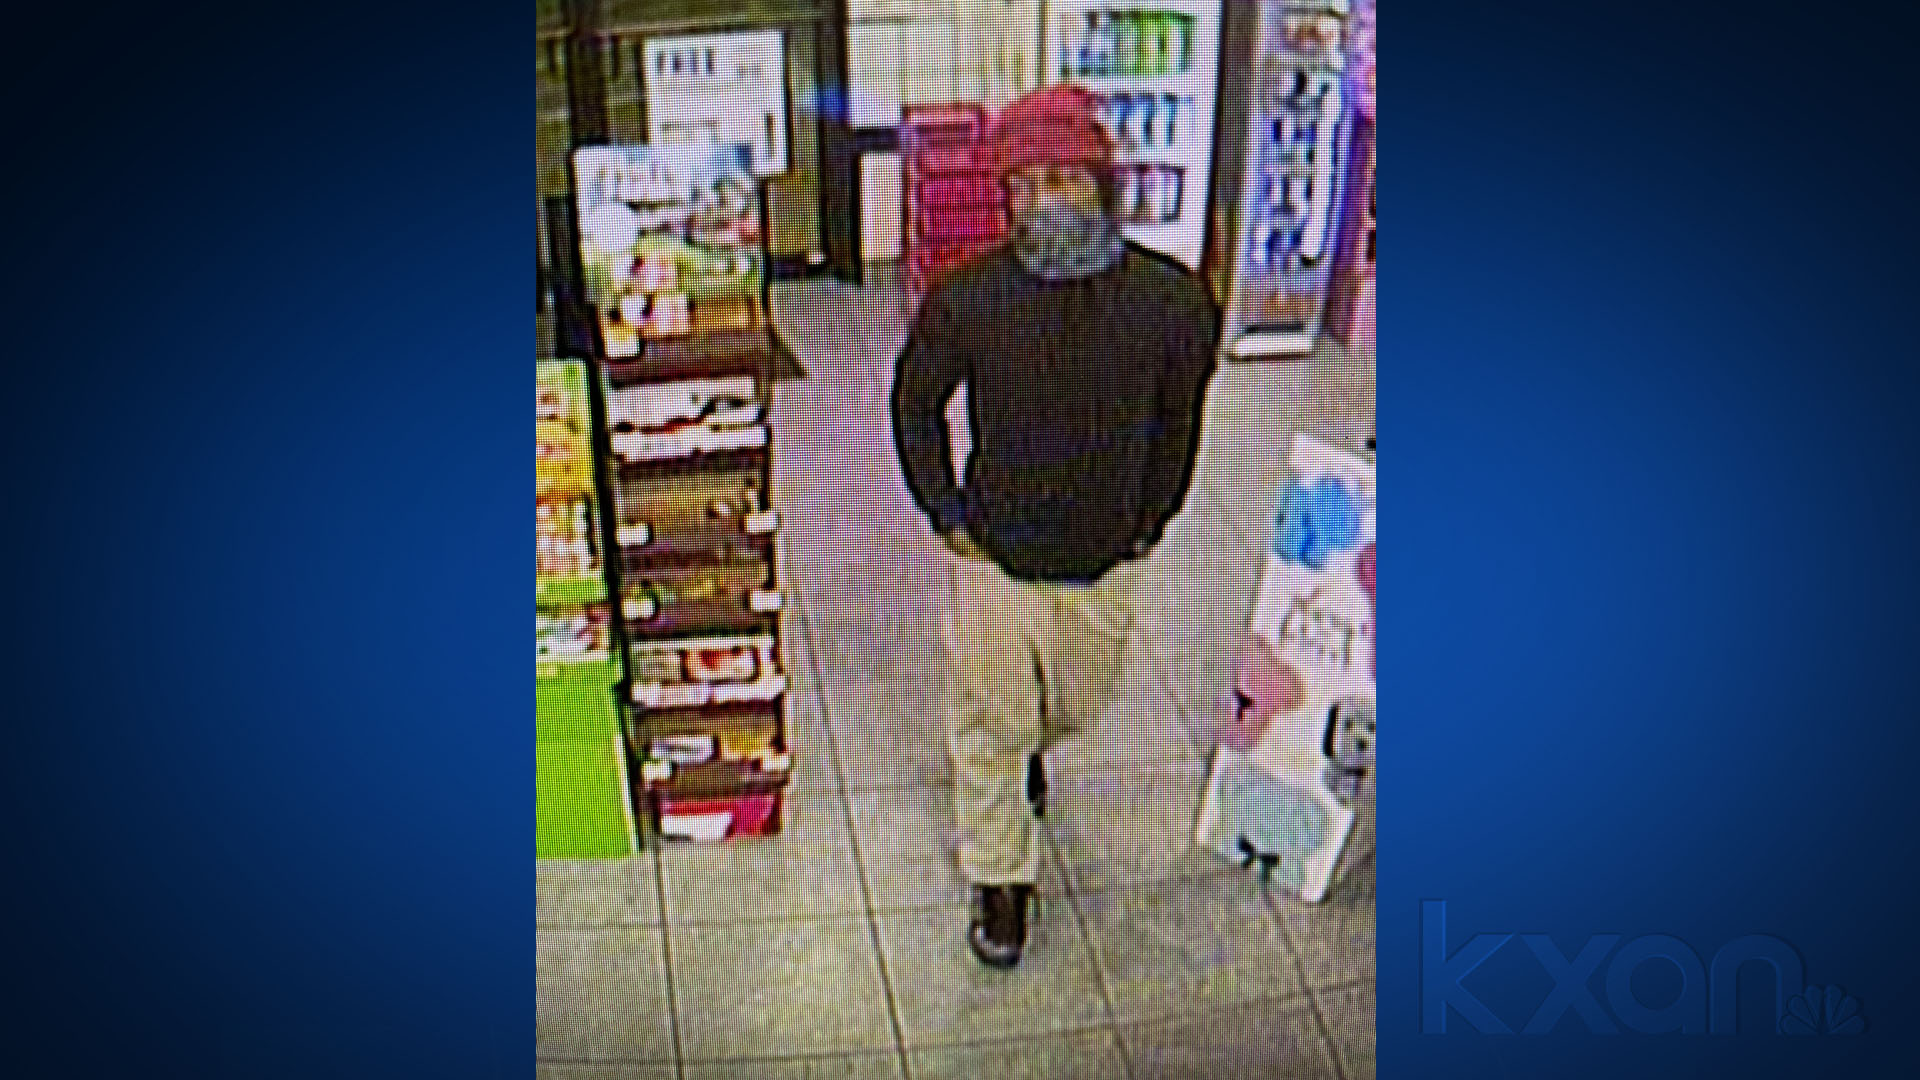 Suspect accused in two overnight robberies (New Braunfels Police Photo)